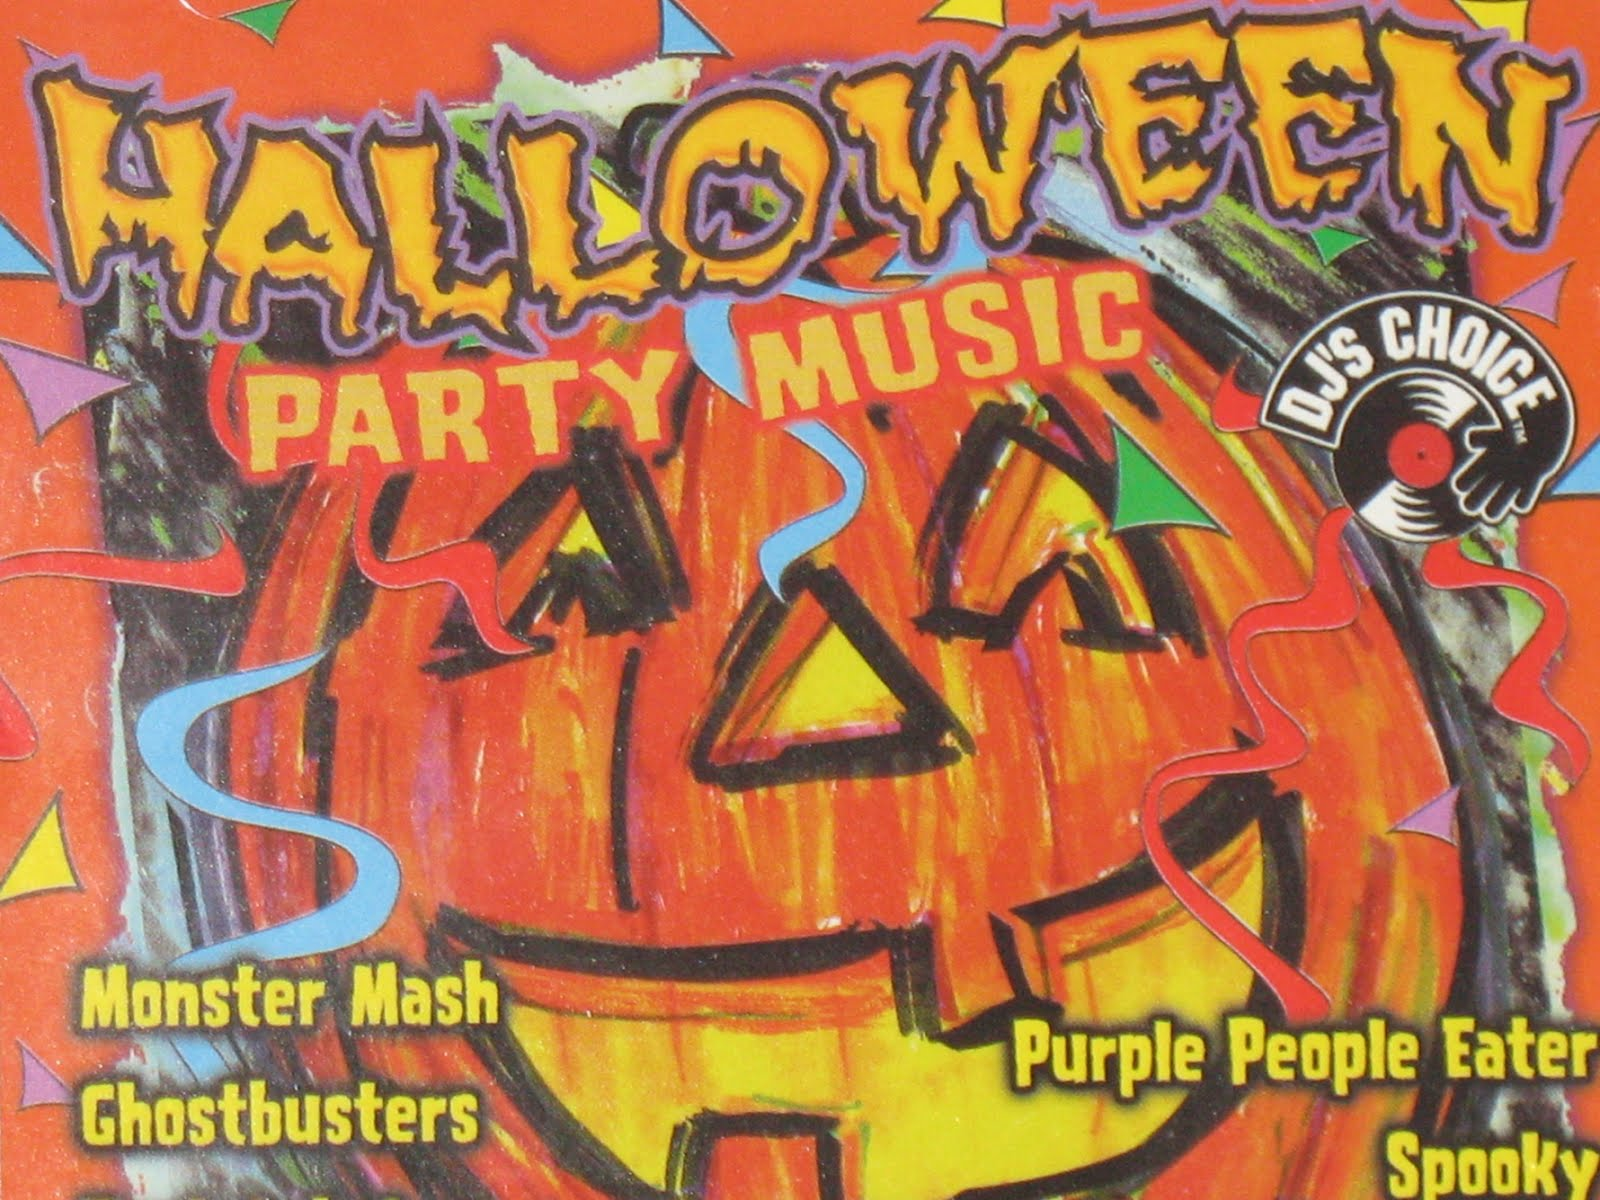 Halloween Music Cd Photo Album. Michael Doherty s Music Log ...